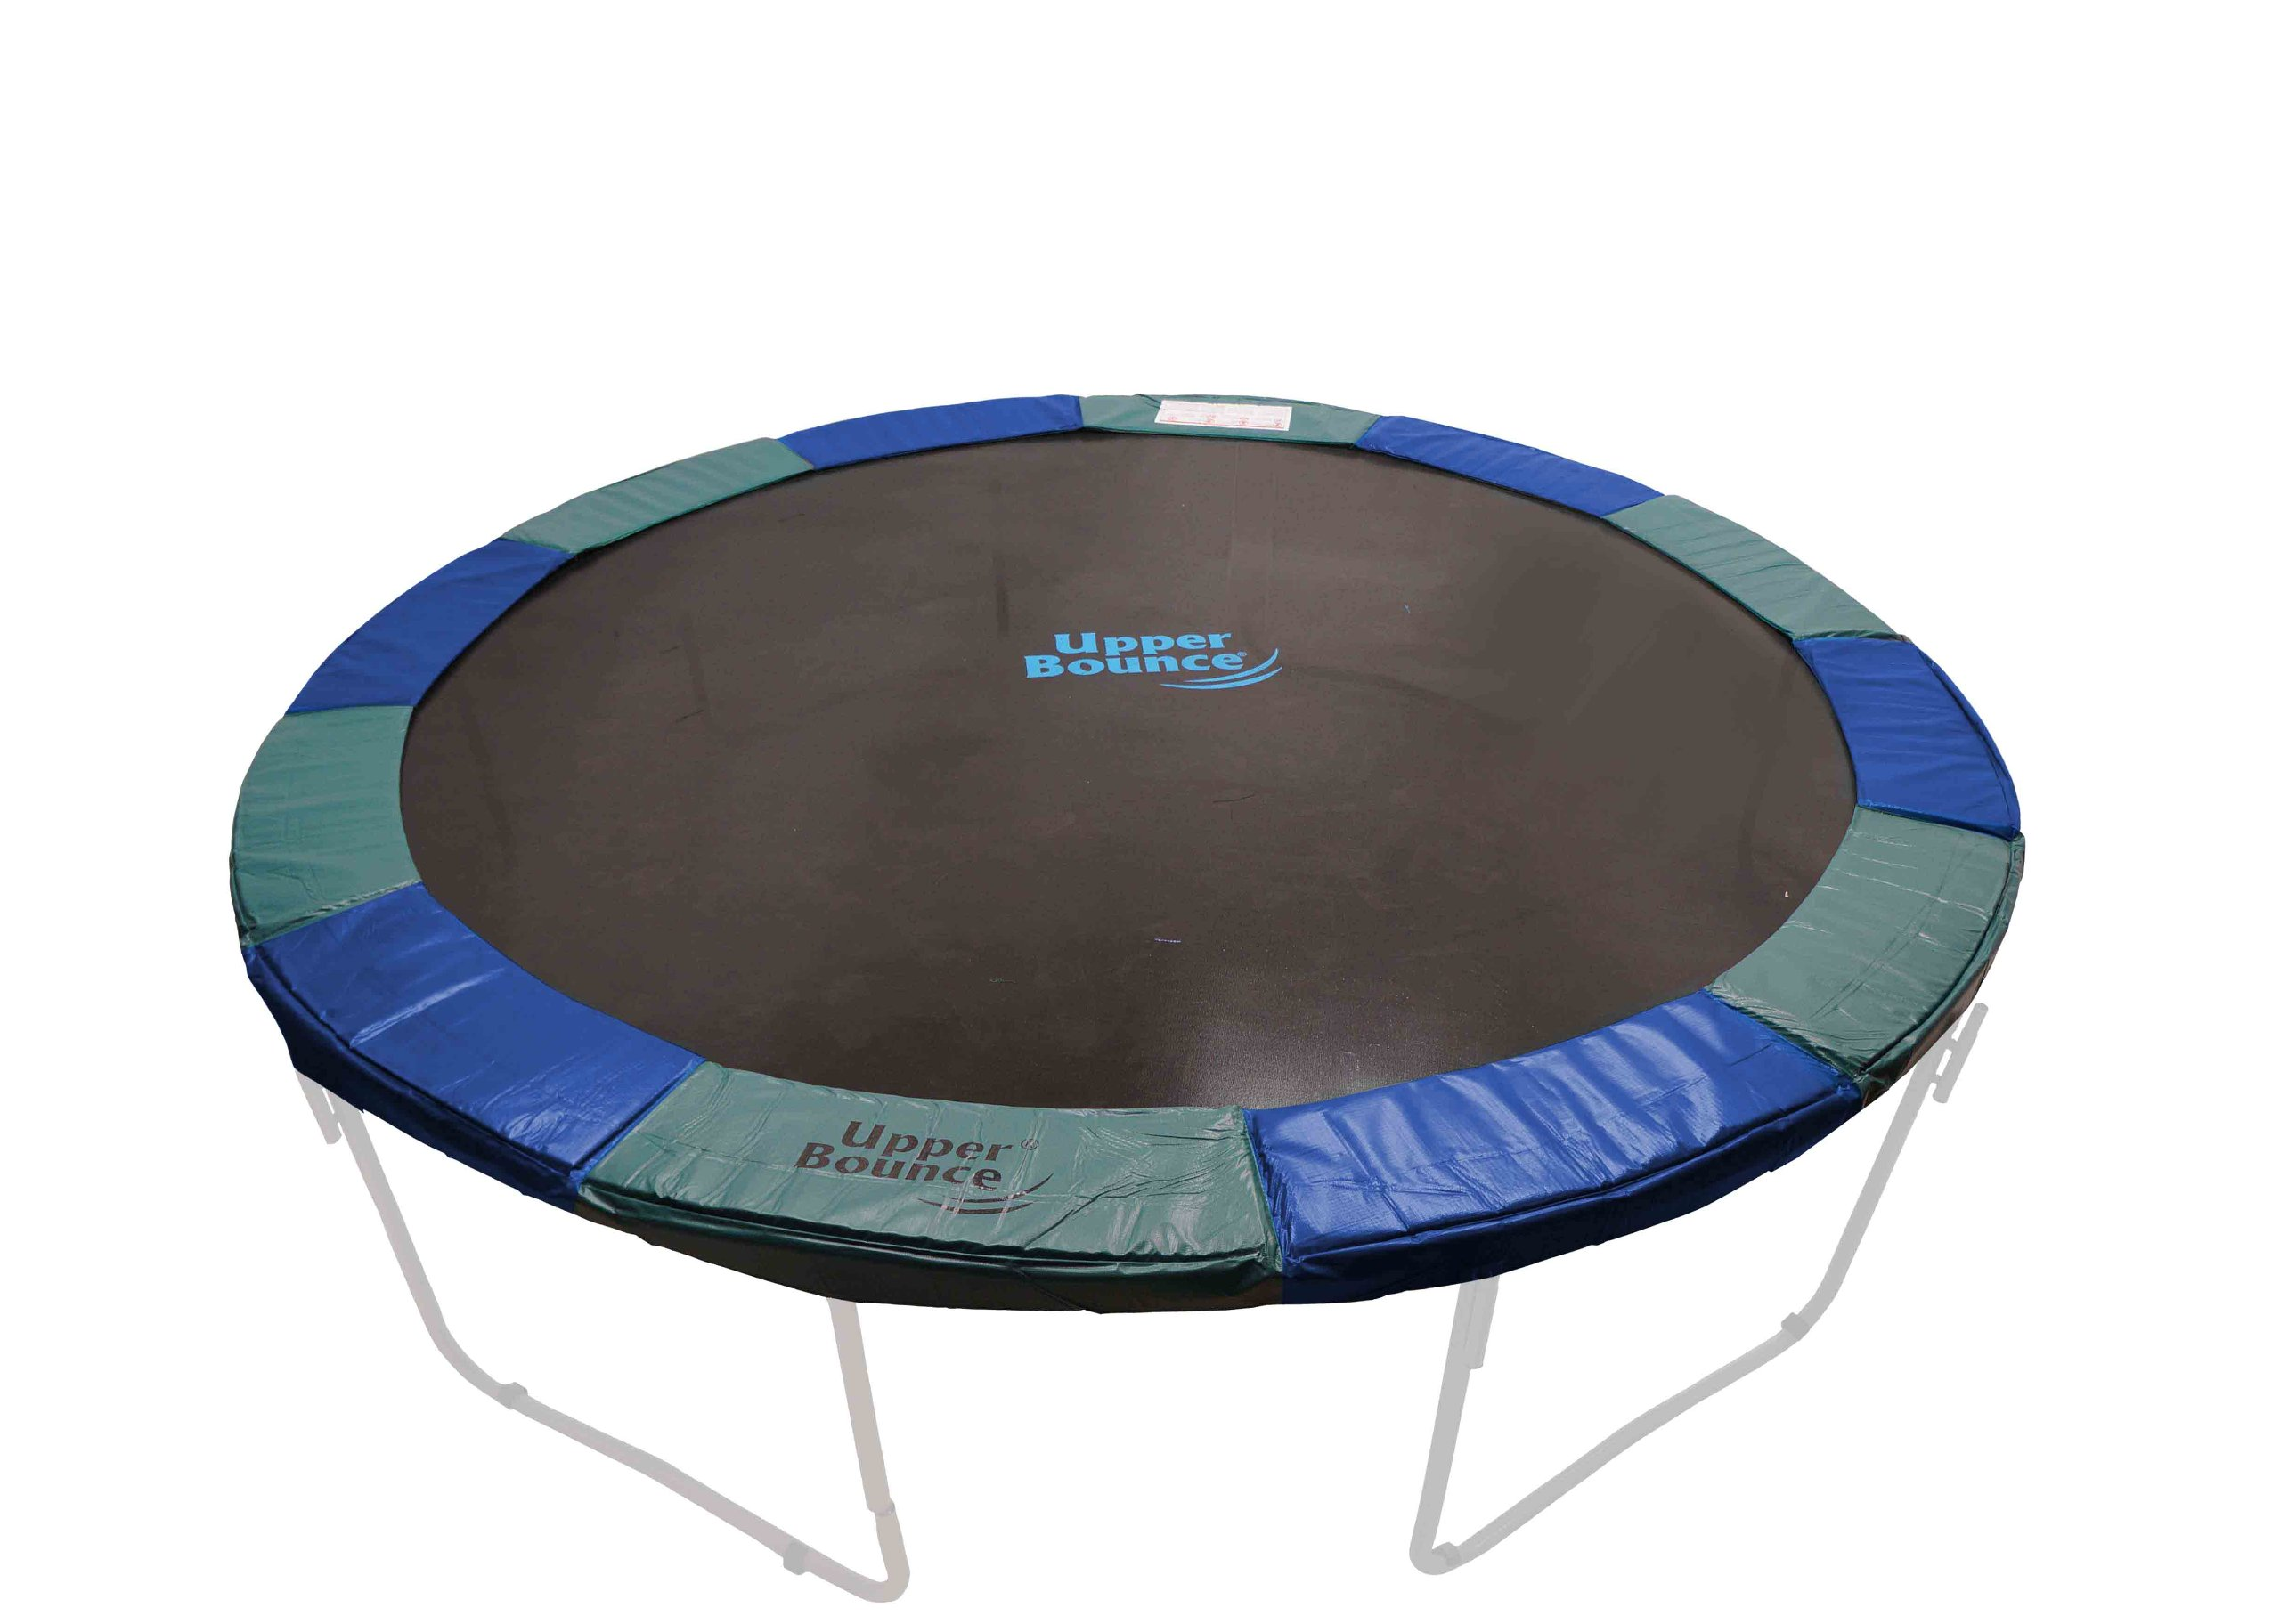 Upper Bounce Trampoline Safety Pad, 15-Feet x 10-Inch, Blue/Green by Upper Bounce